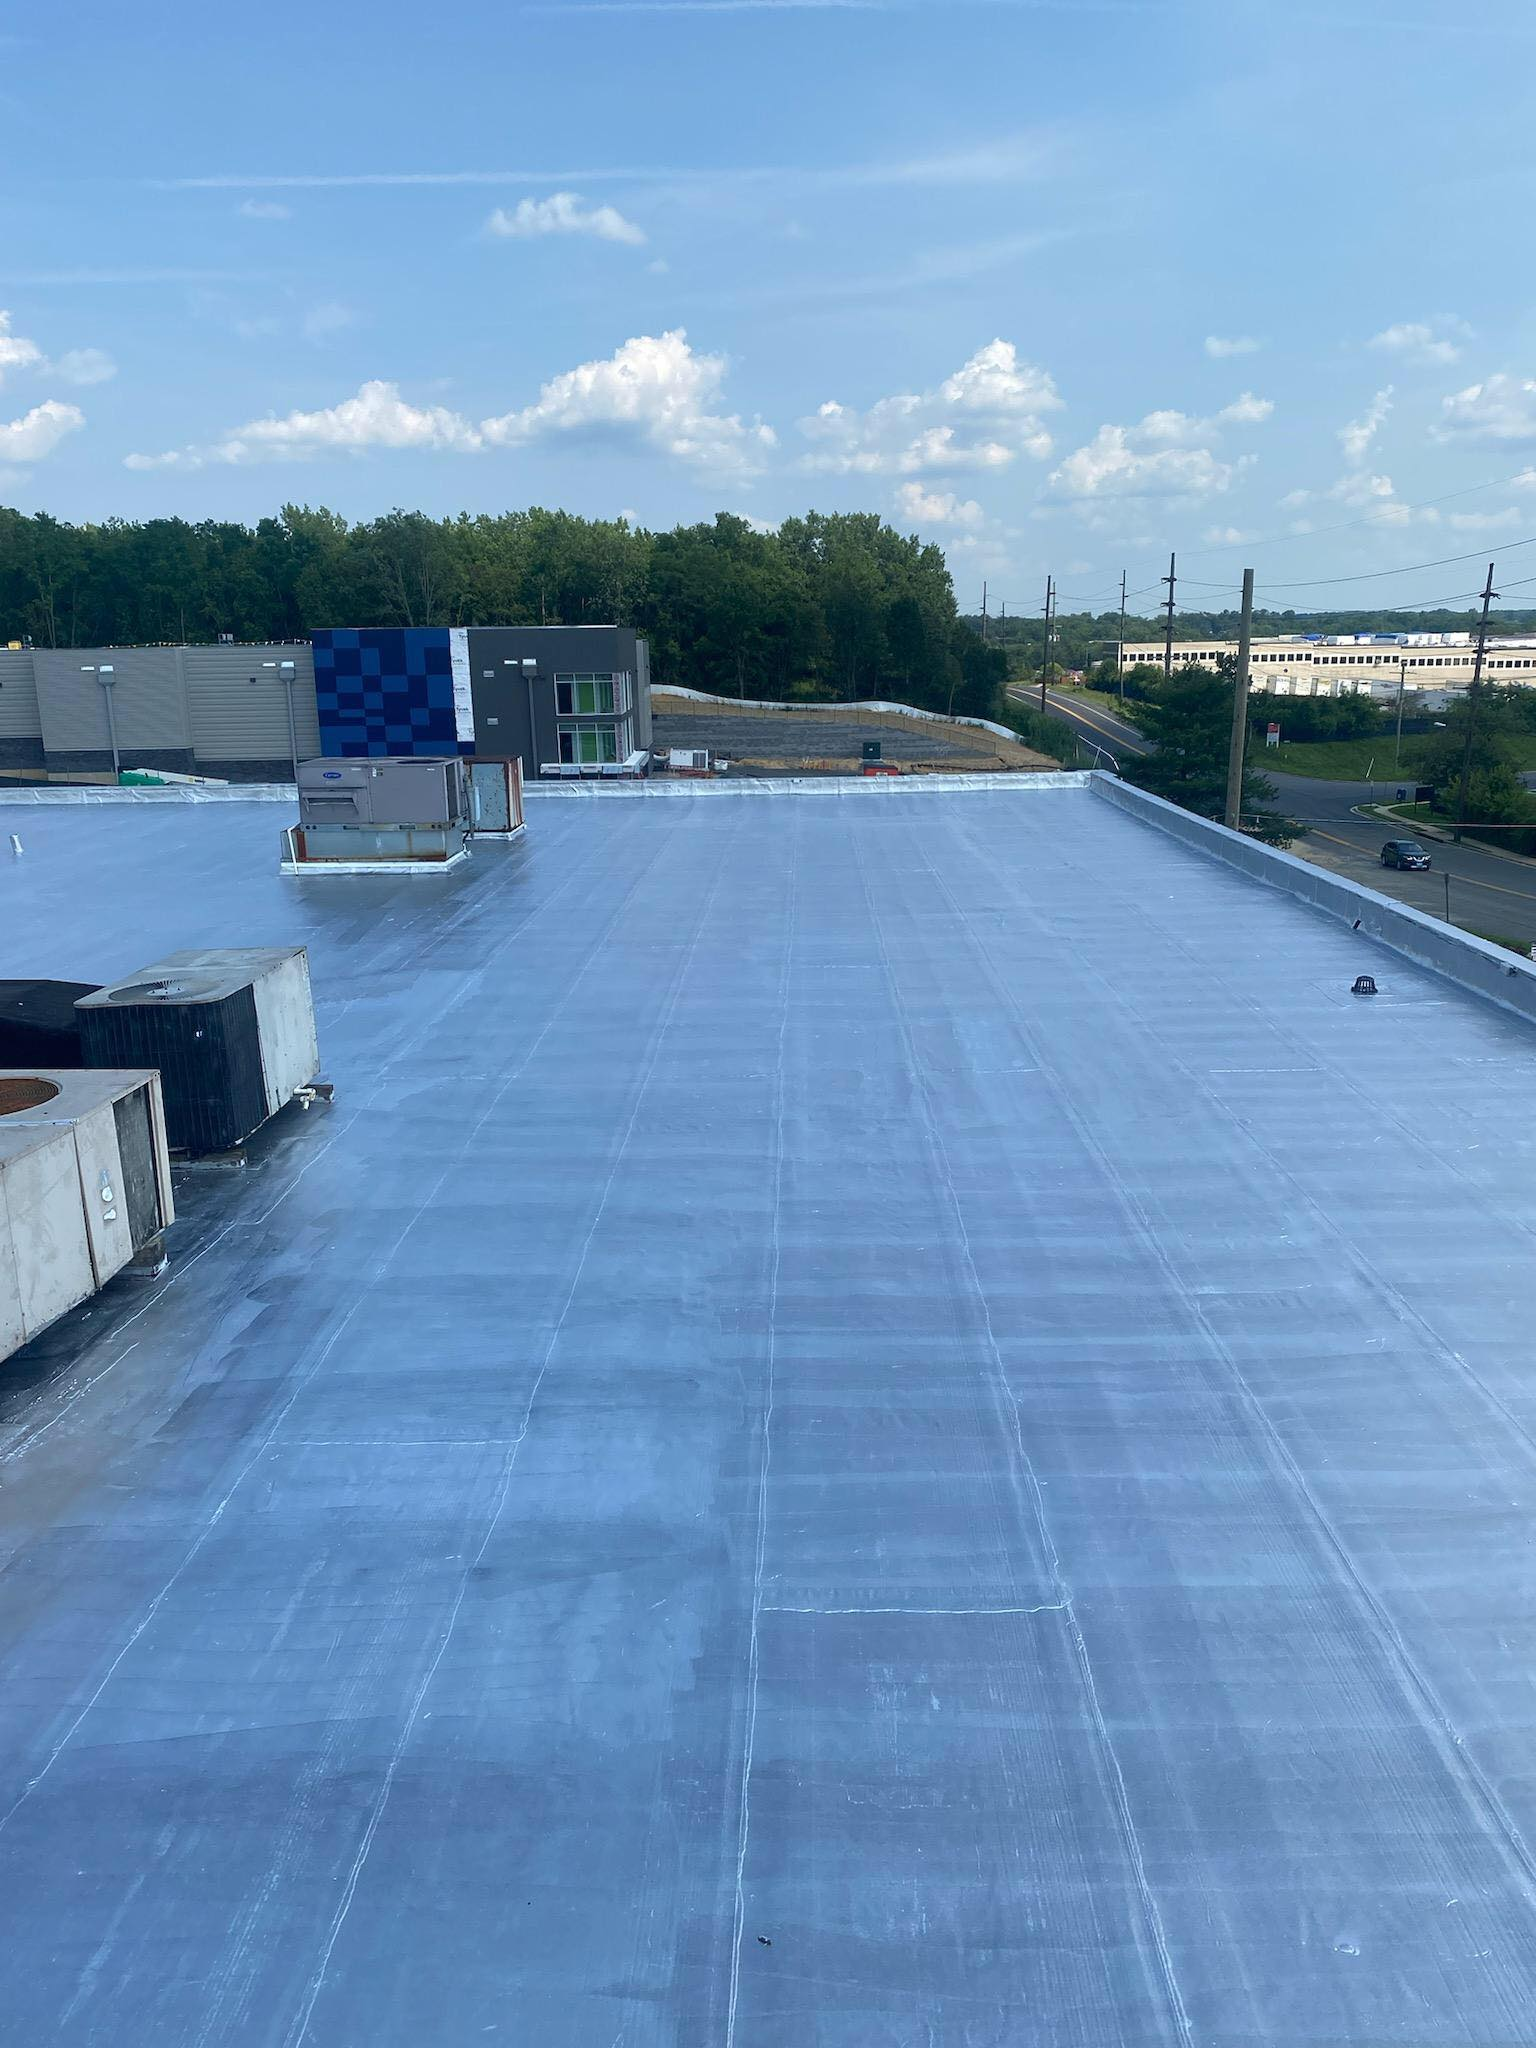 St Batman Rd/Oxon Hill Residential Roof Replacement Project